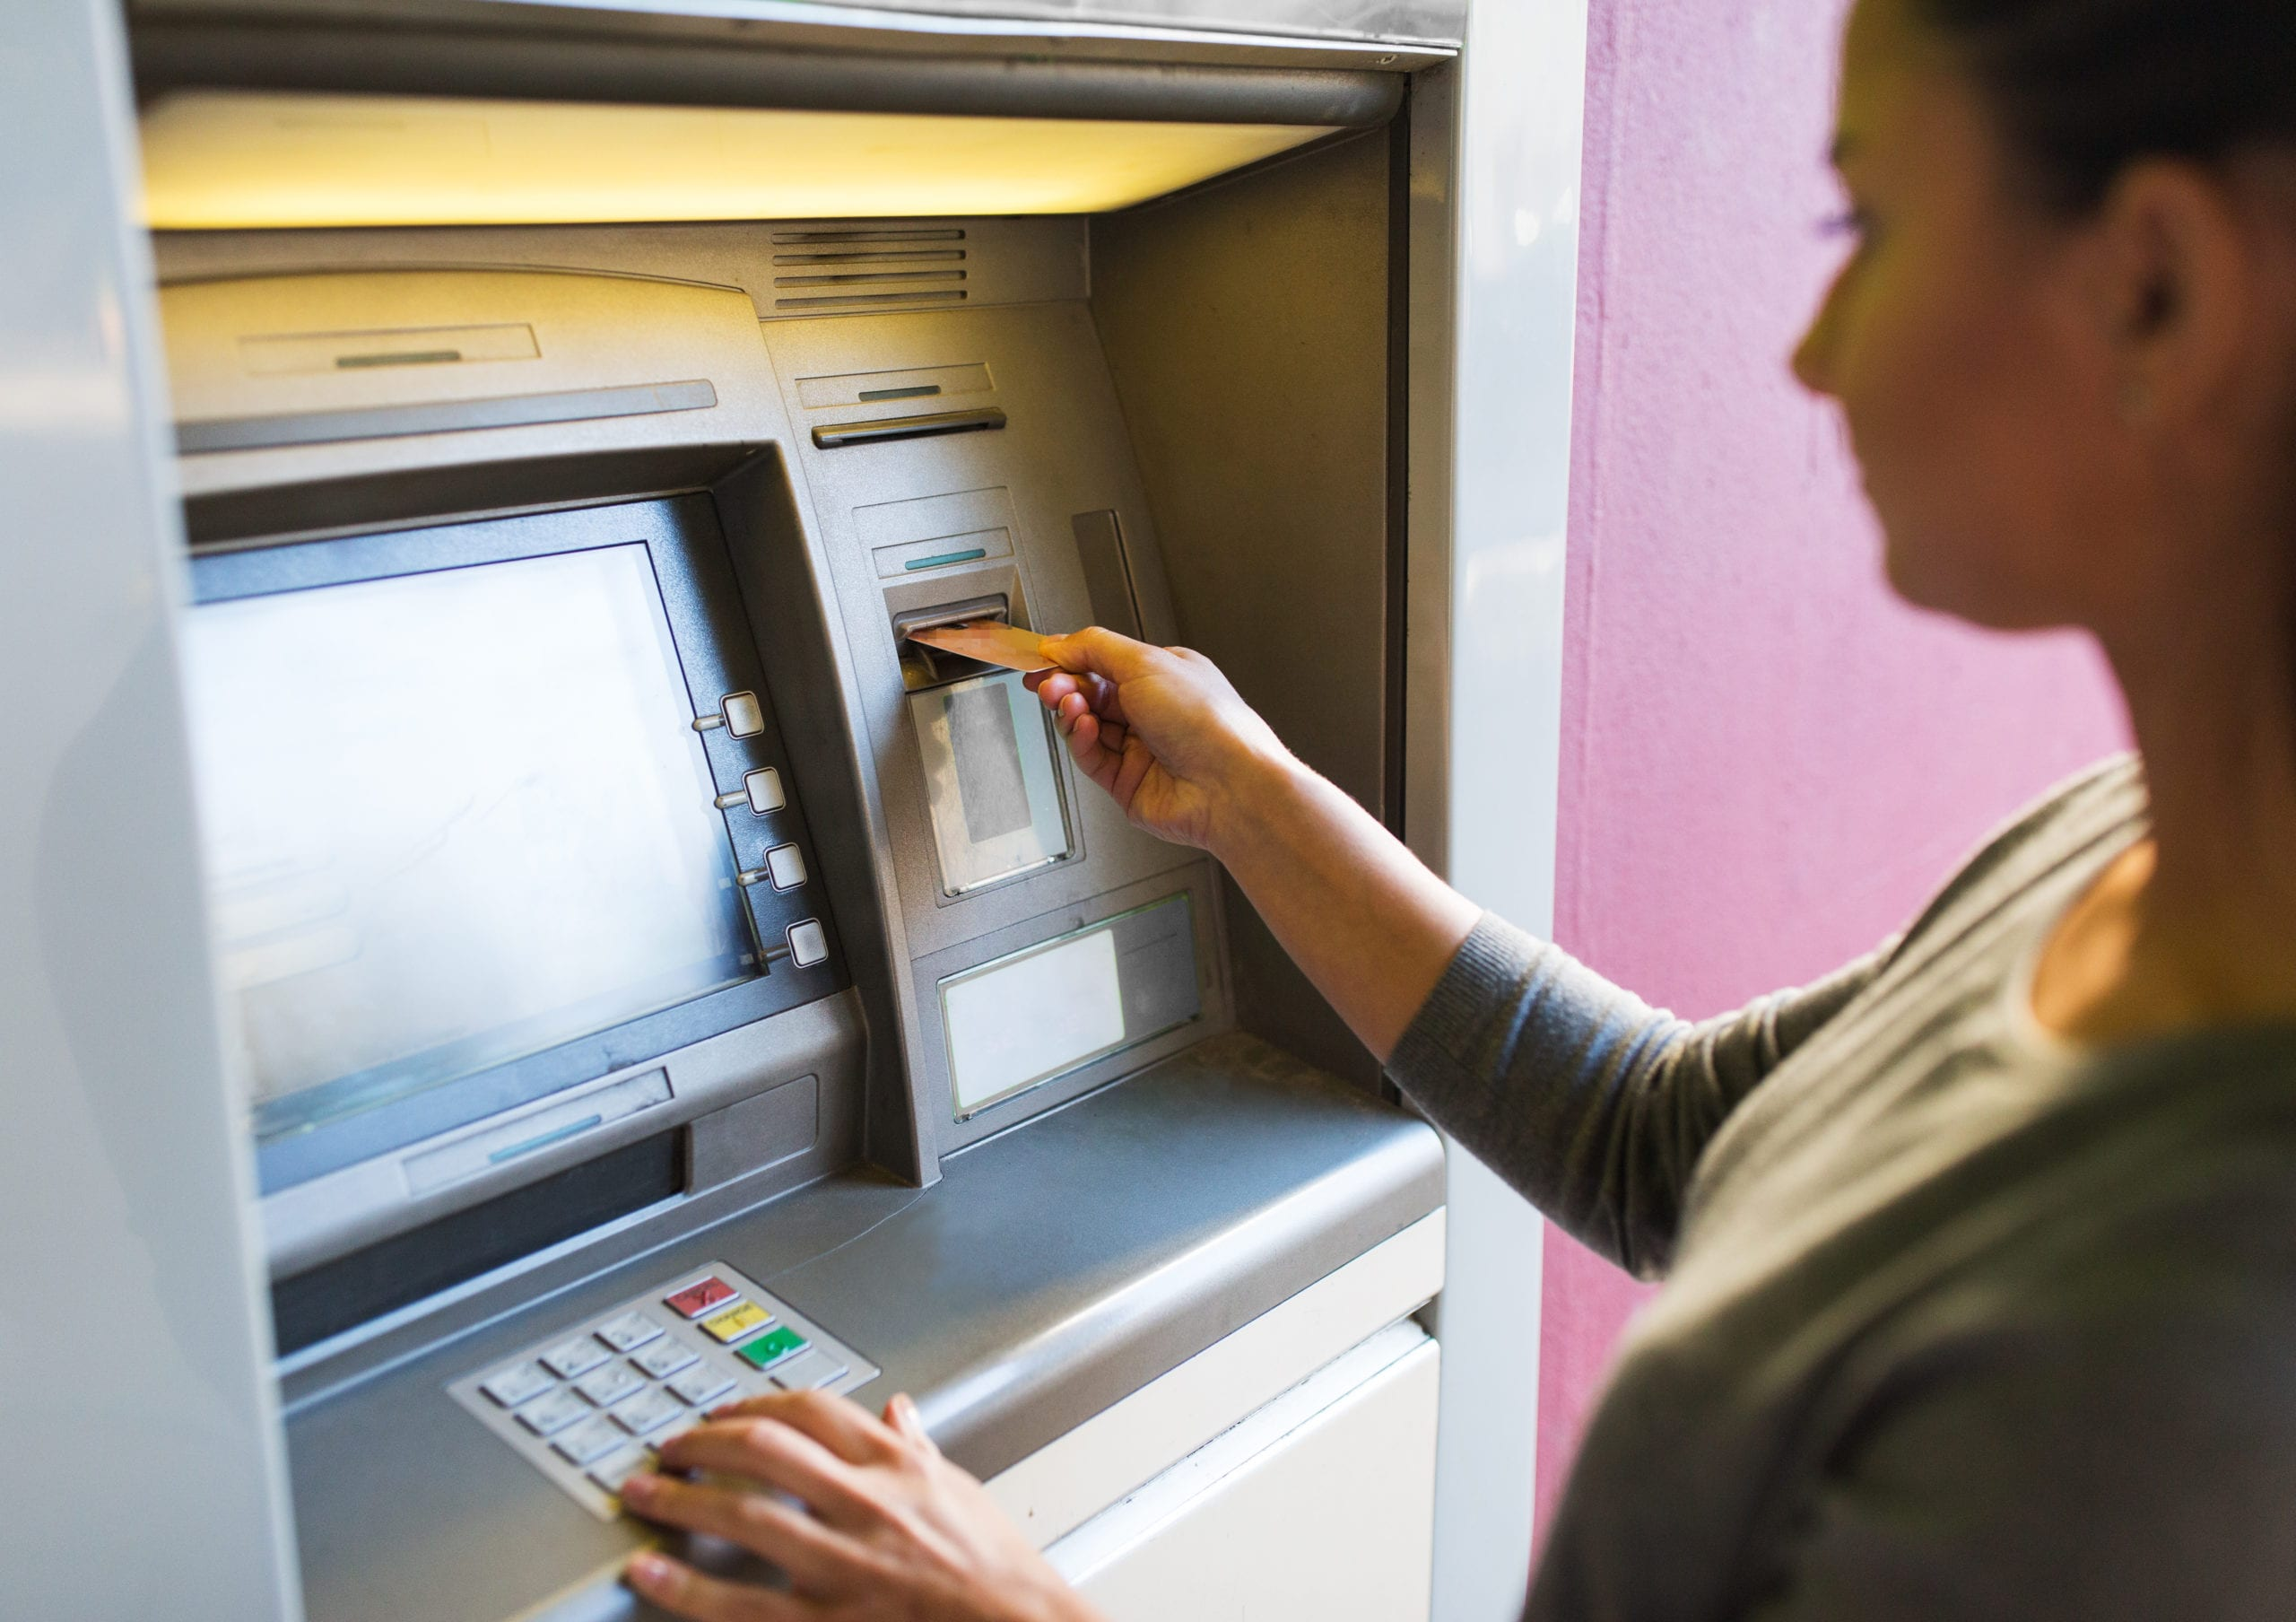 woman uses atm machine at bank